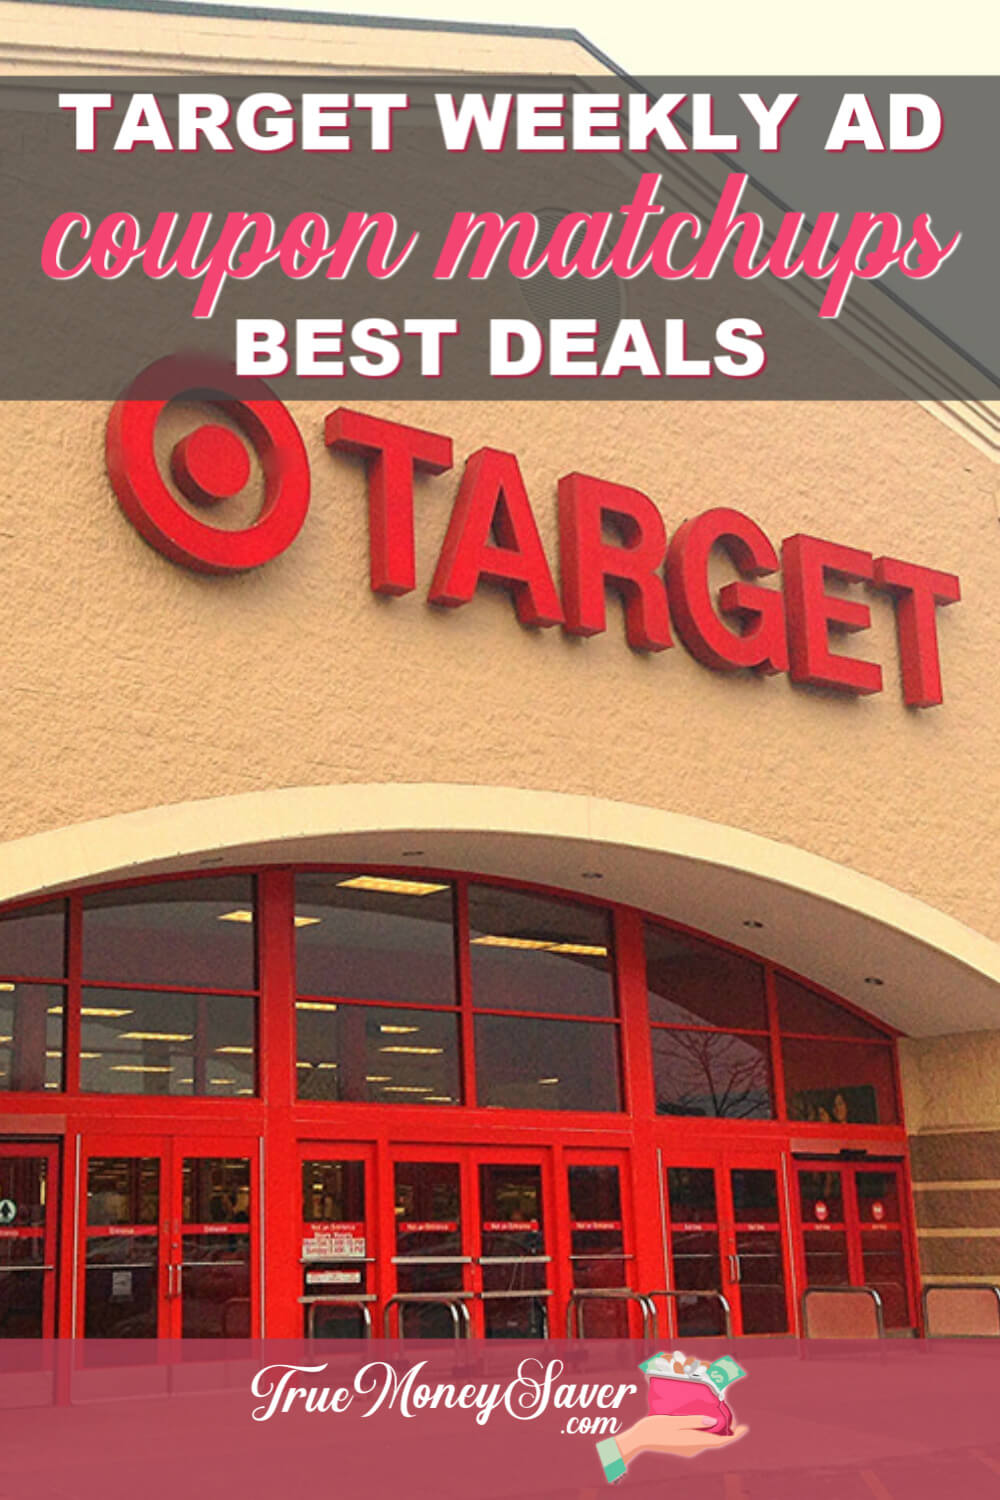 Target Best Deals: 9 FREEbies Plus 11 Deals $.74 Each Or Less! Target Weekly Ad (6/23-6/29)